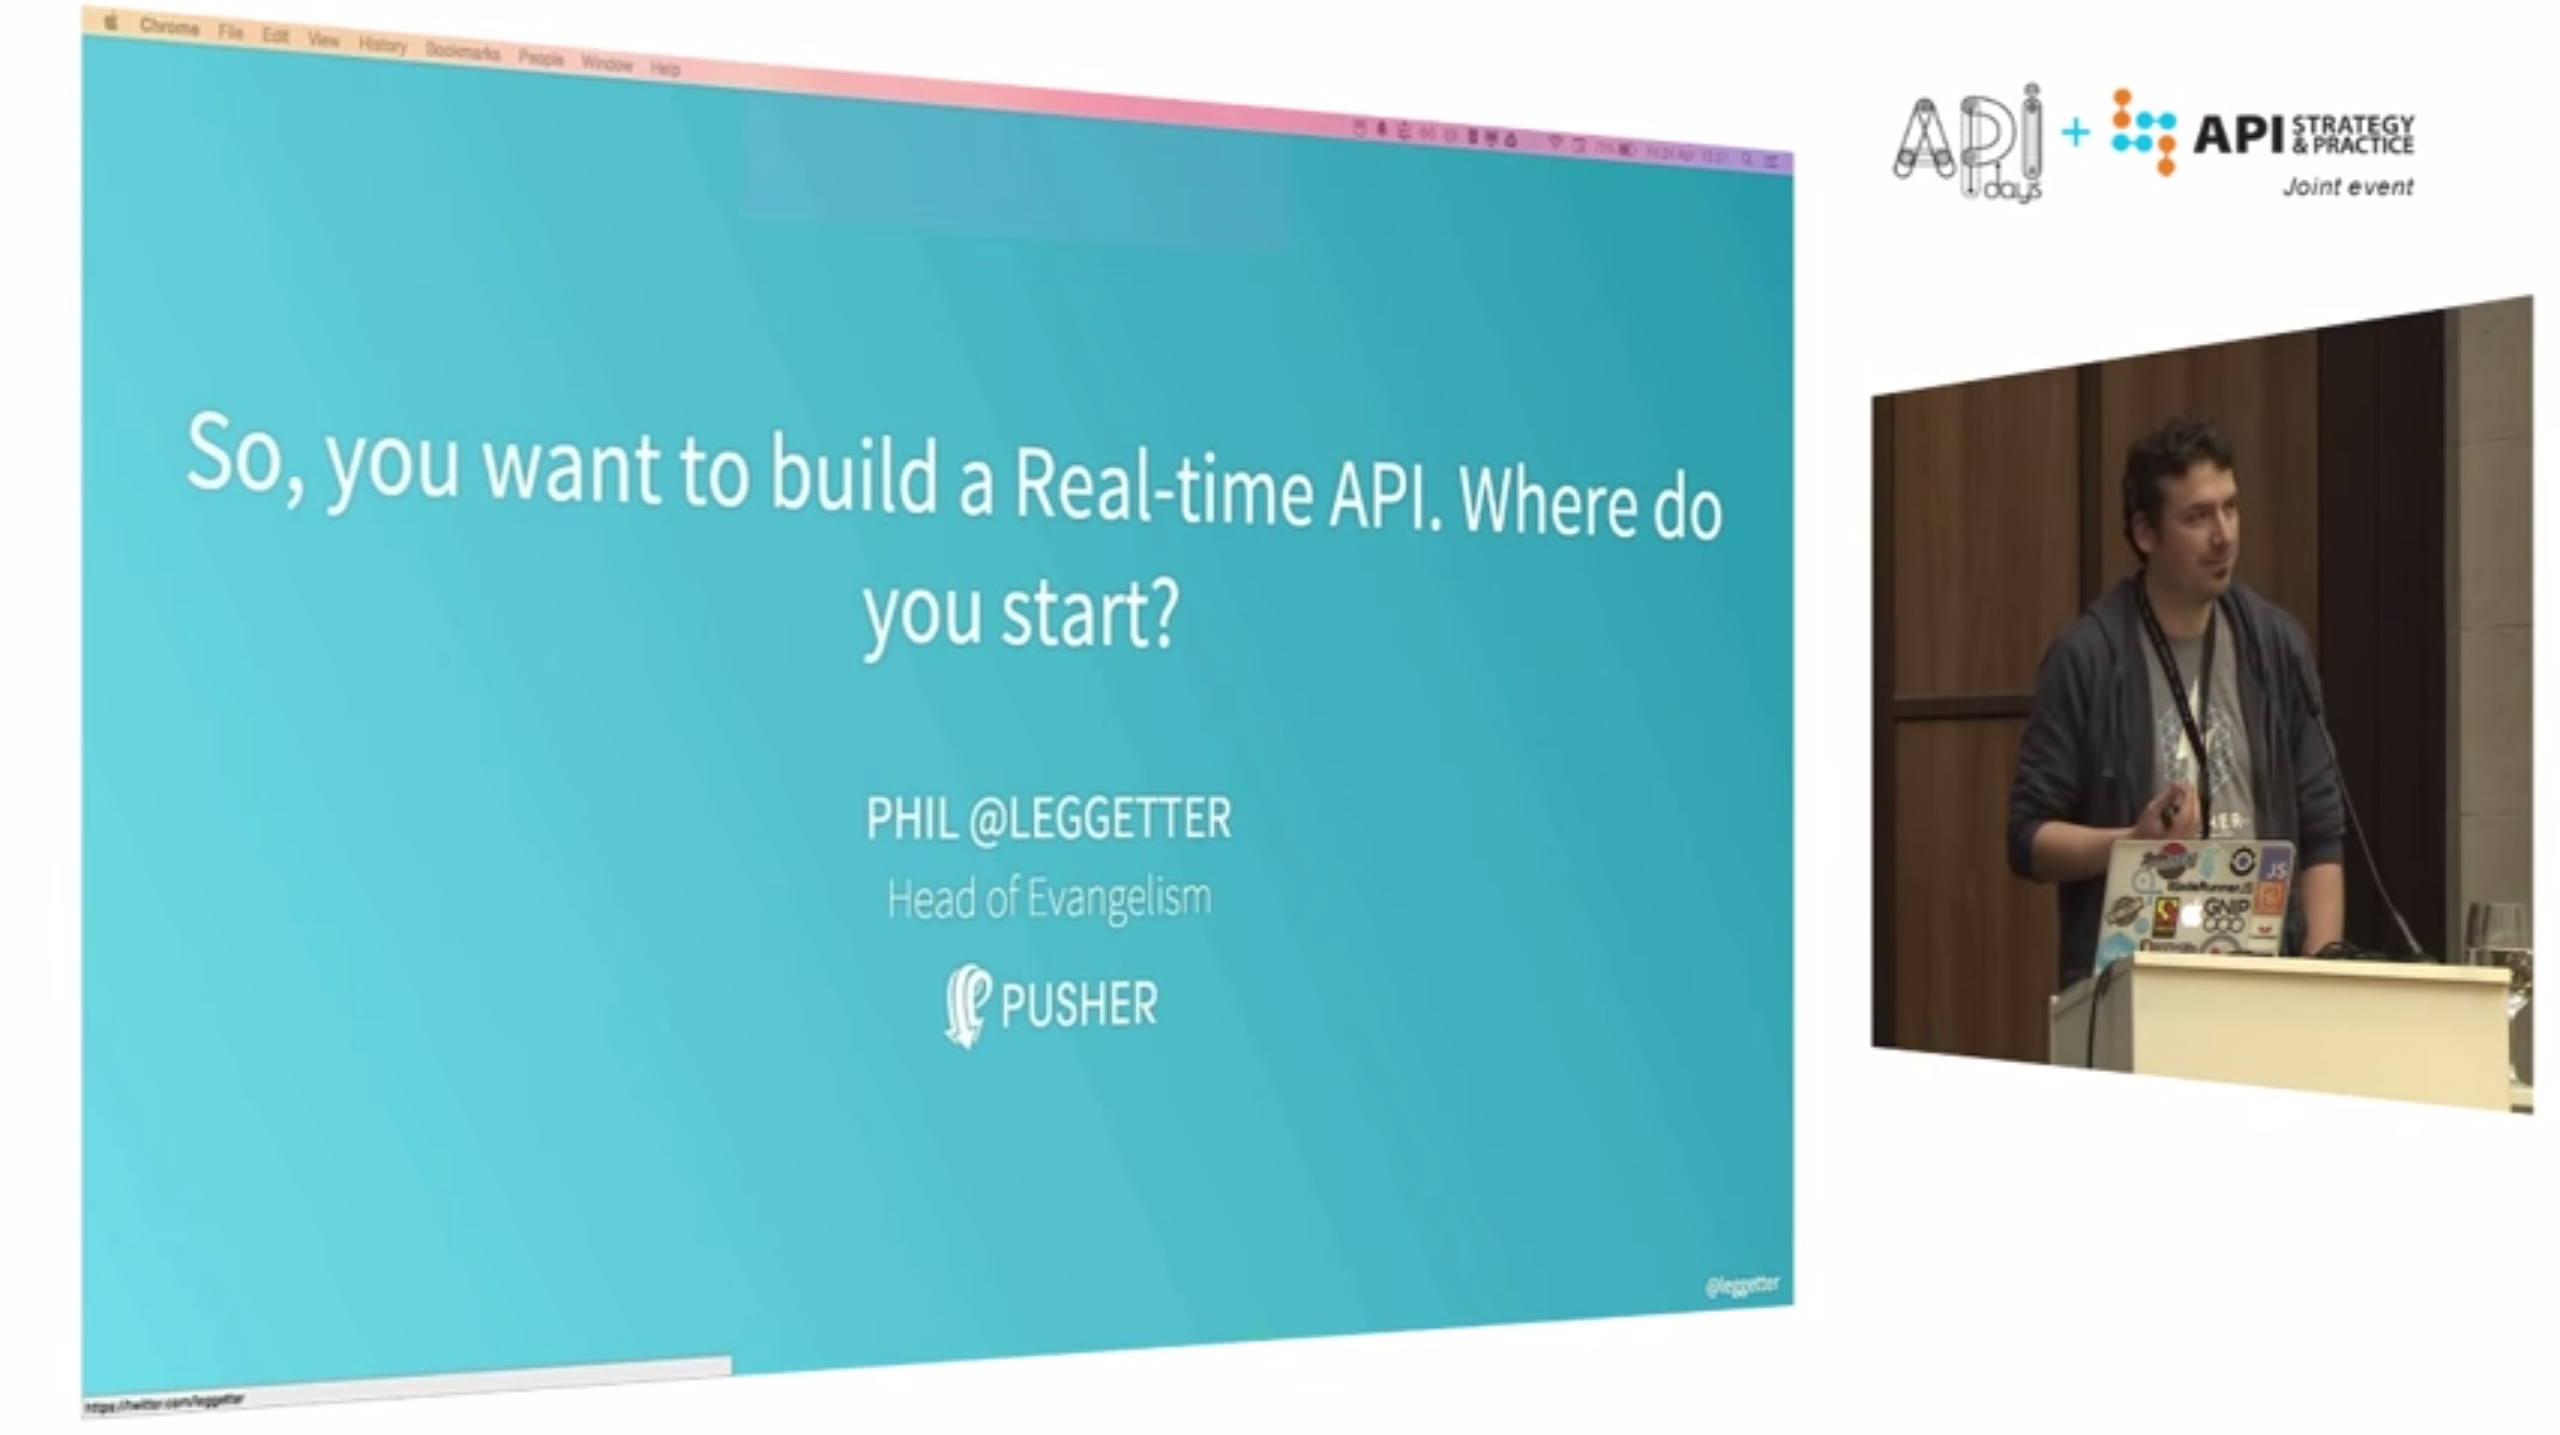 Getting Started Building Real-Time APIs preview image